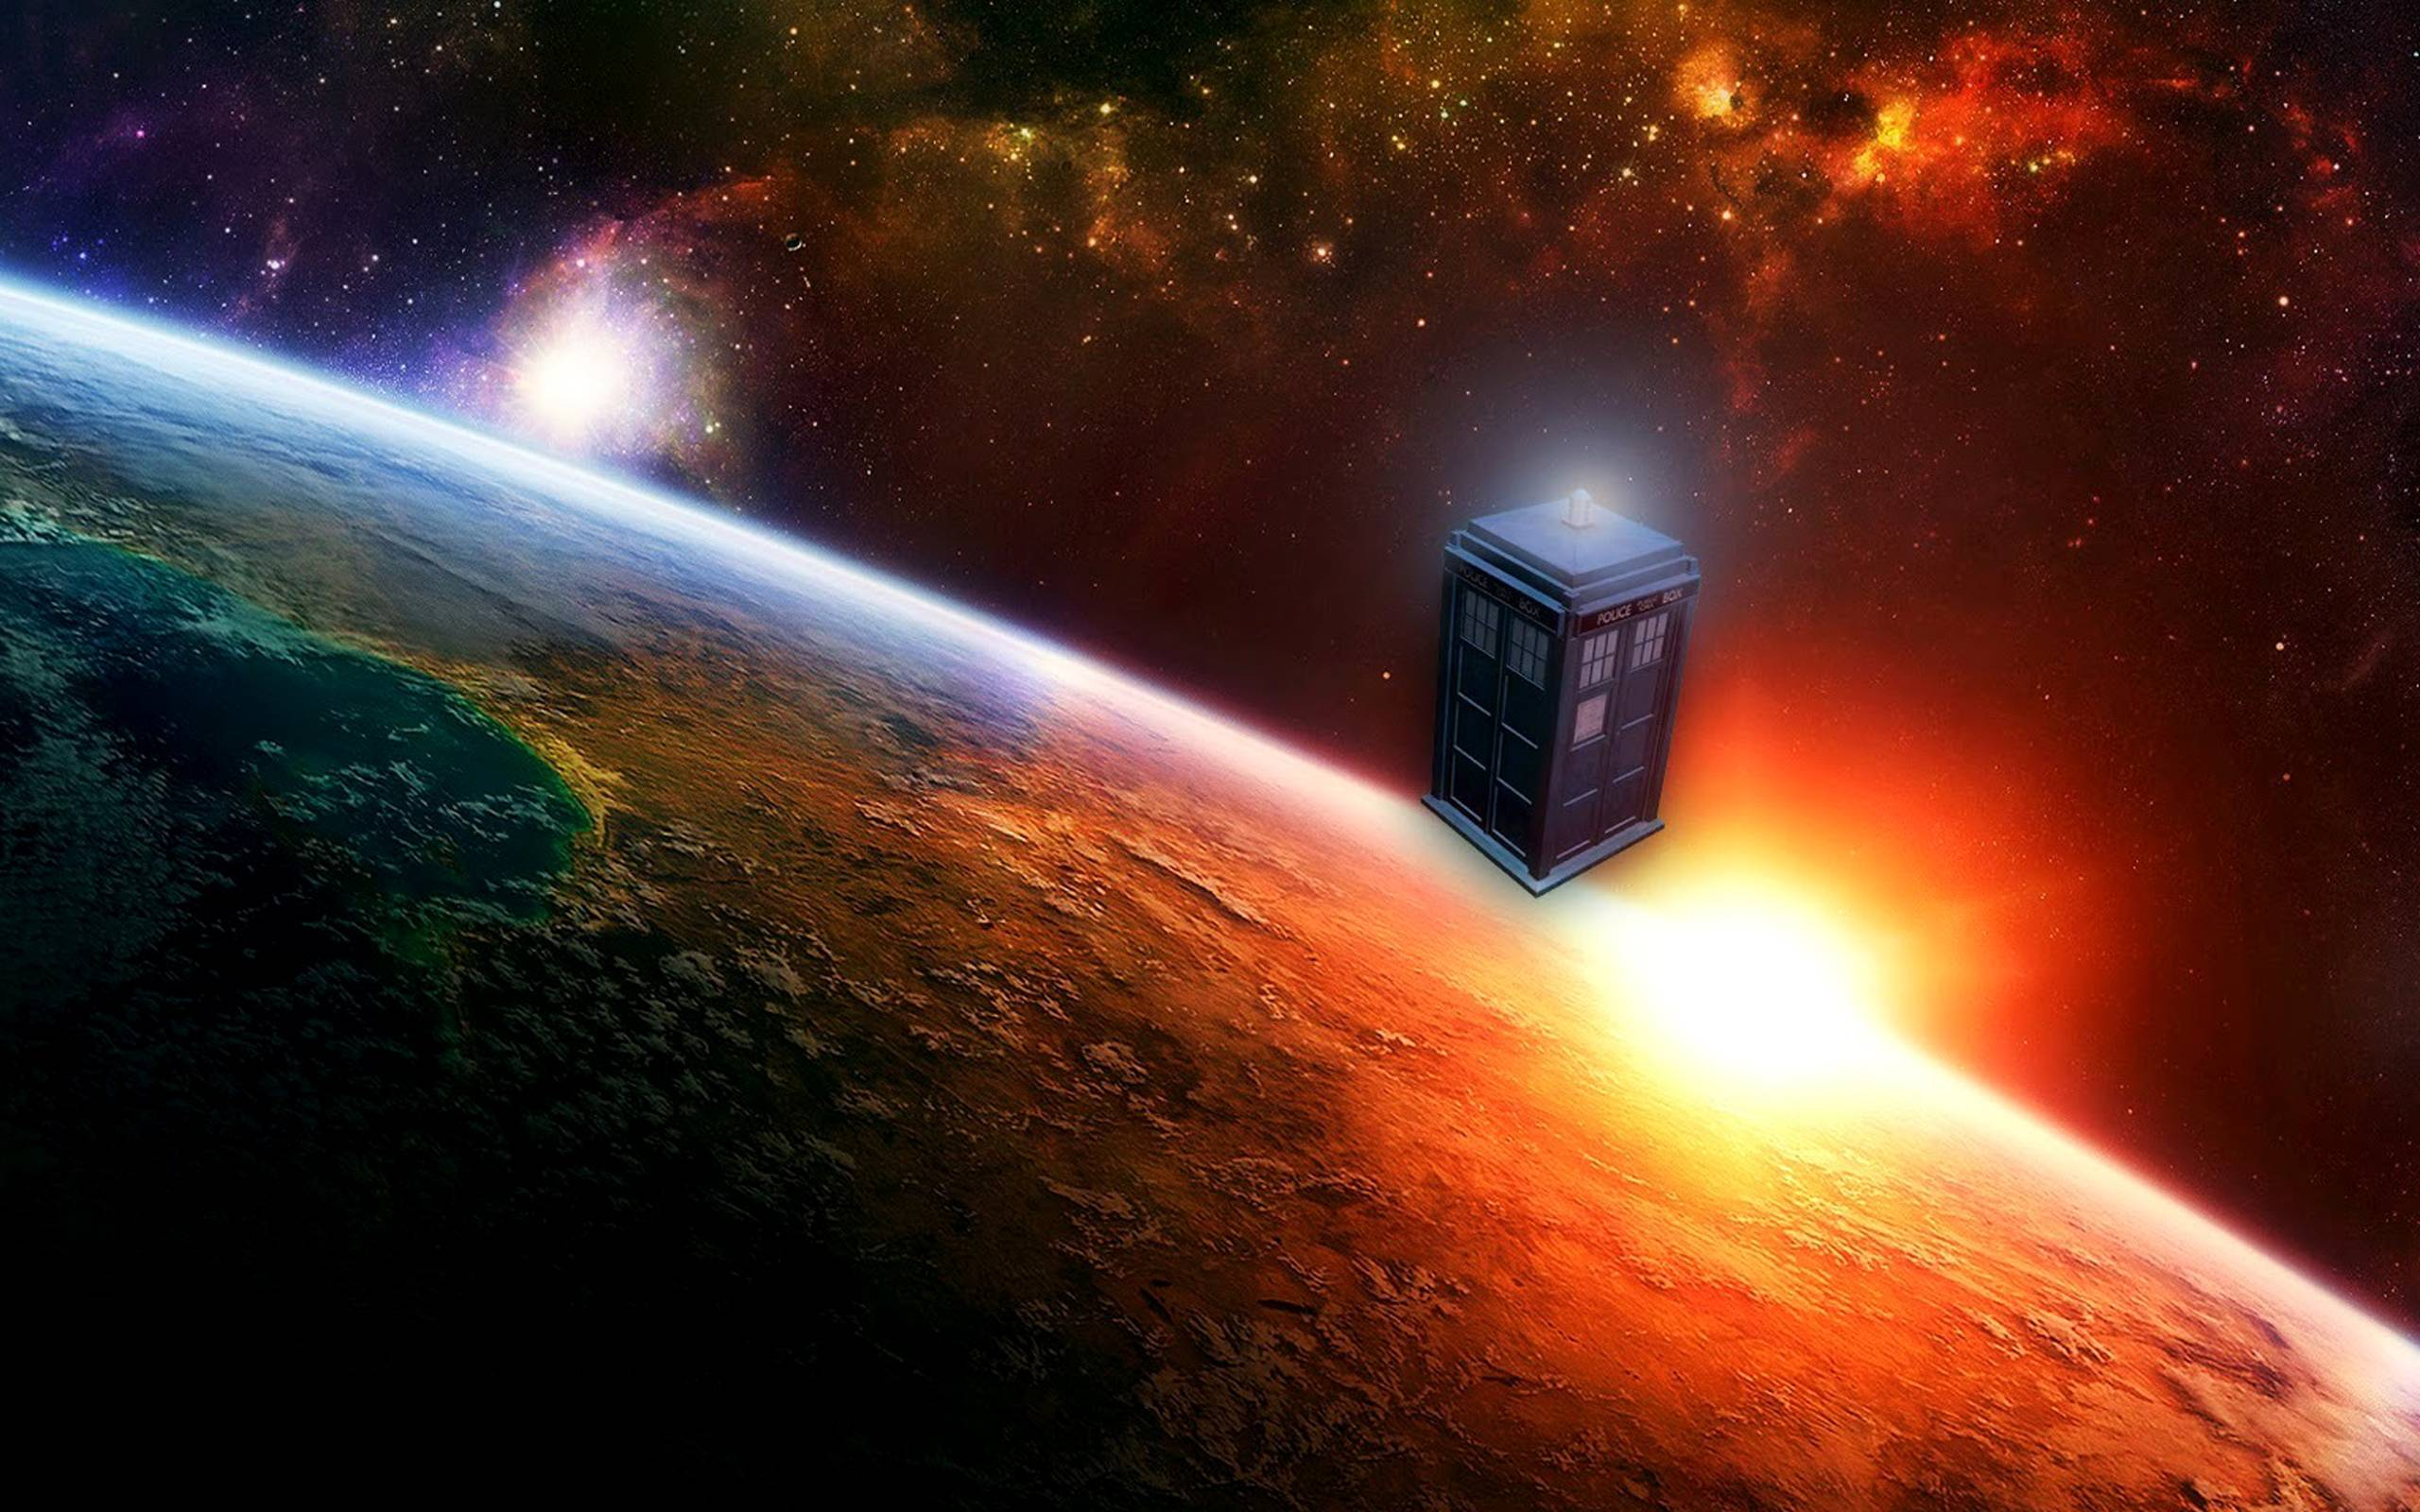 Doctor Who Cool Backgrounds Wallpapers